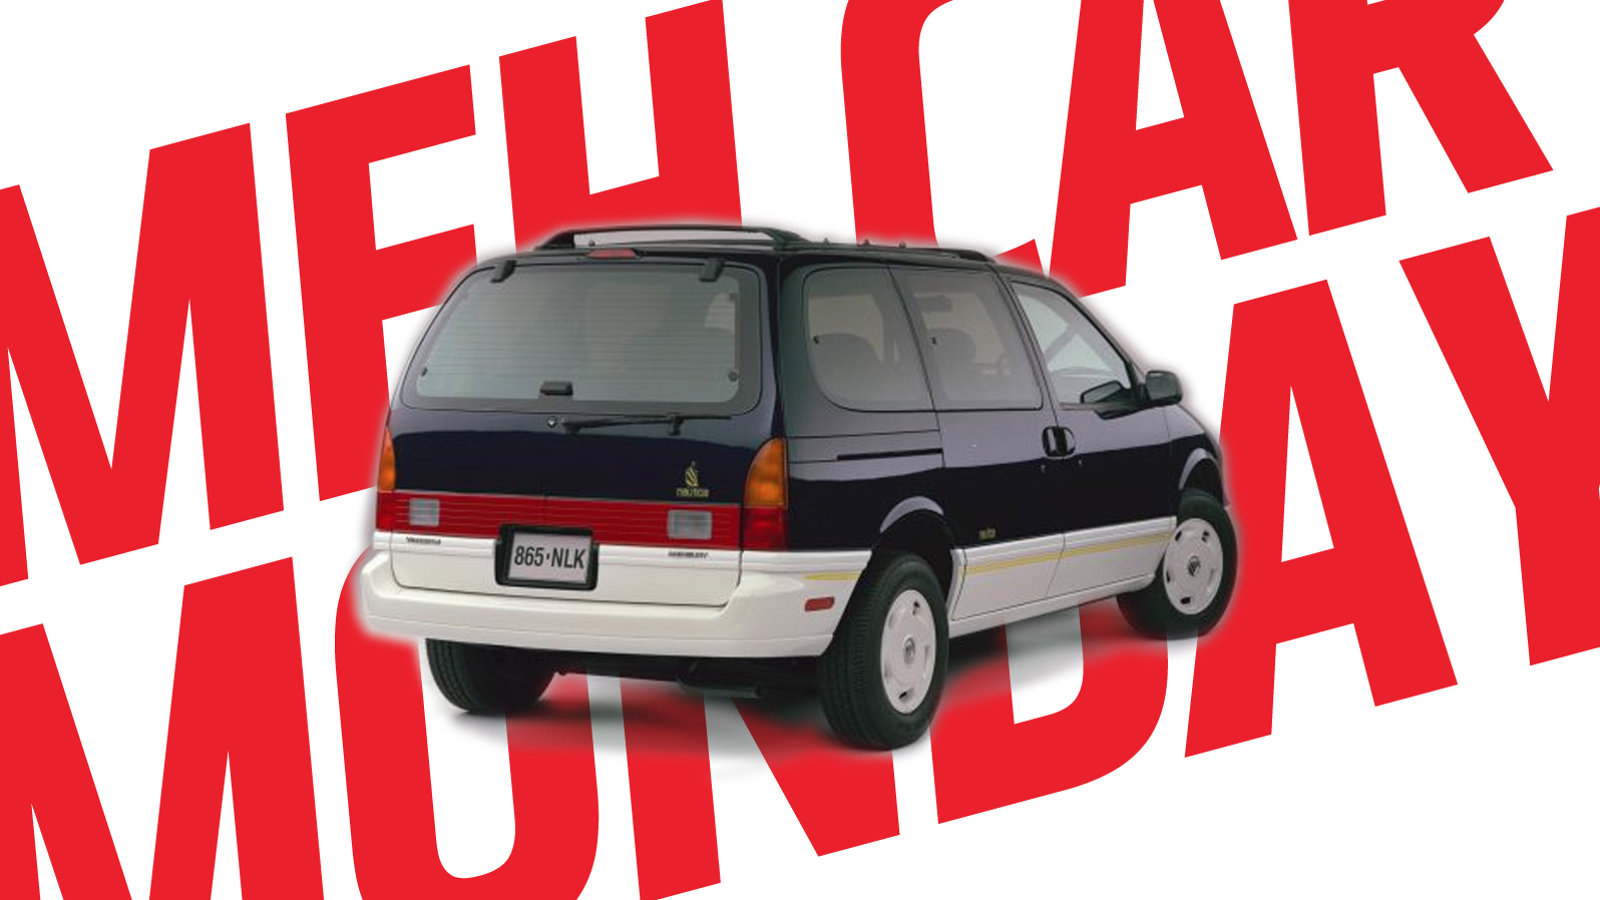 Meh Car Monday: Ugh, The Mercury Villager, Especially That Nautica One